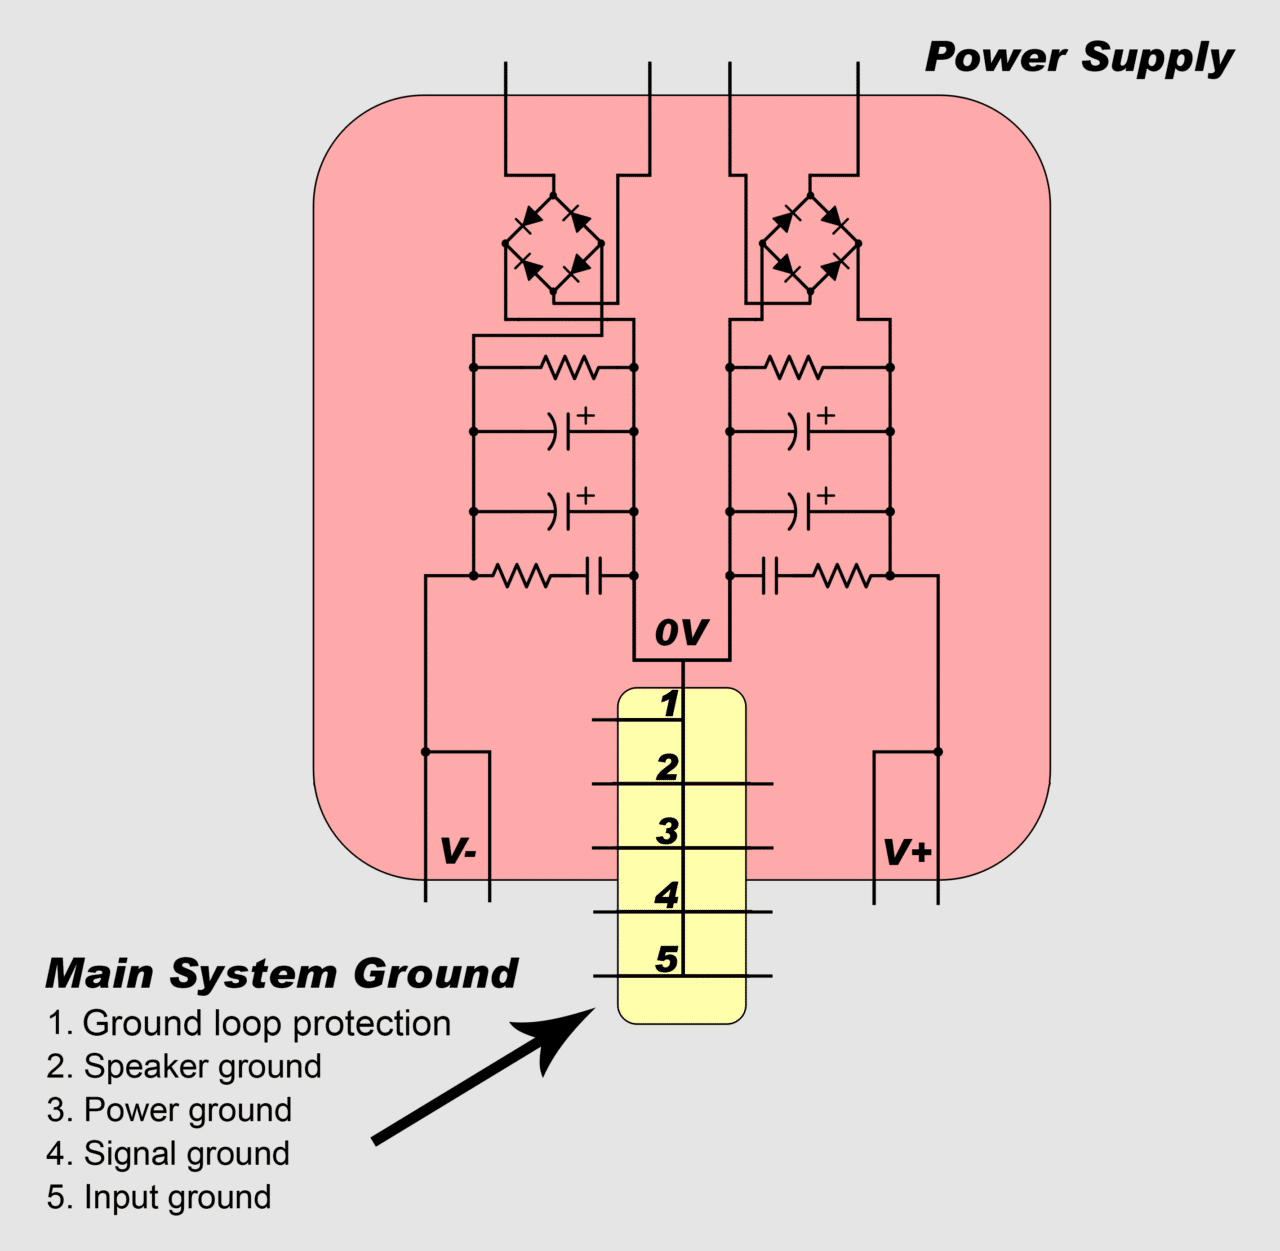 A Complete Guide To Design And Build Hi Fi Lm3886 Amplifier Op Amp Is The Buffer In This Power Supply Circuit Required Individual Ground Networks Are Connected Main System So That Higher Current Grounds Closer Reservoir Capacitors